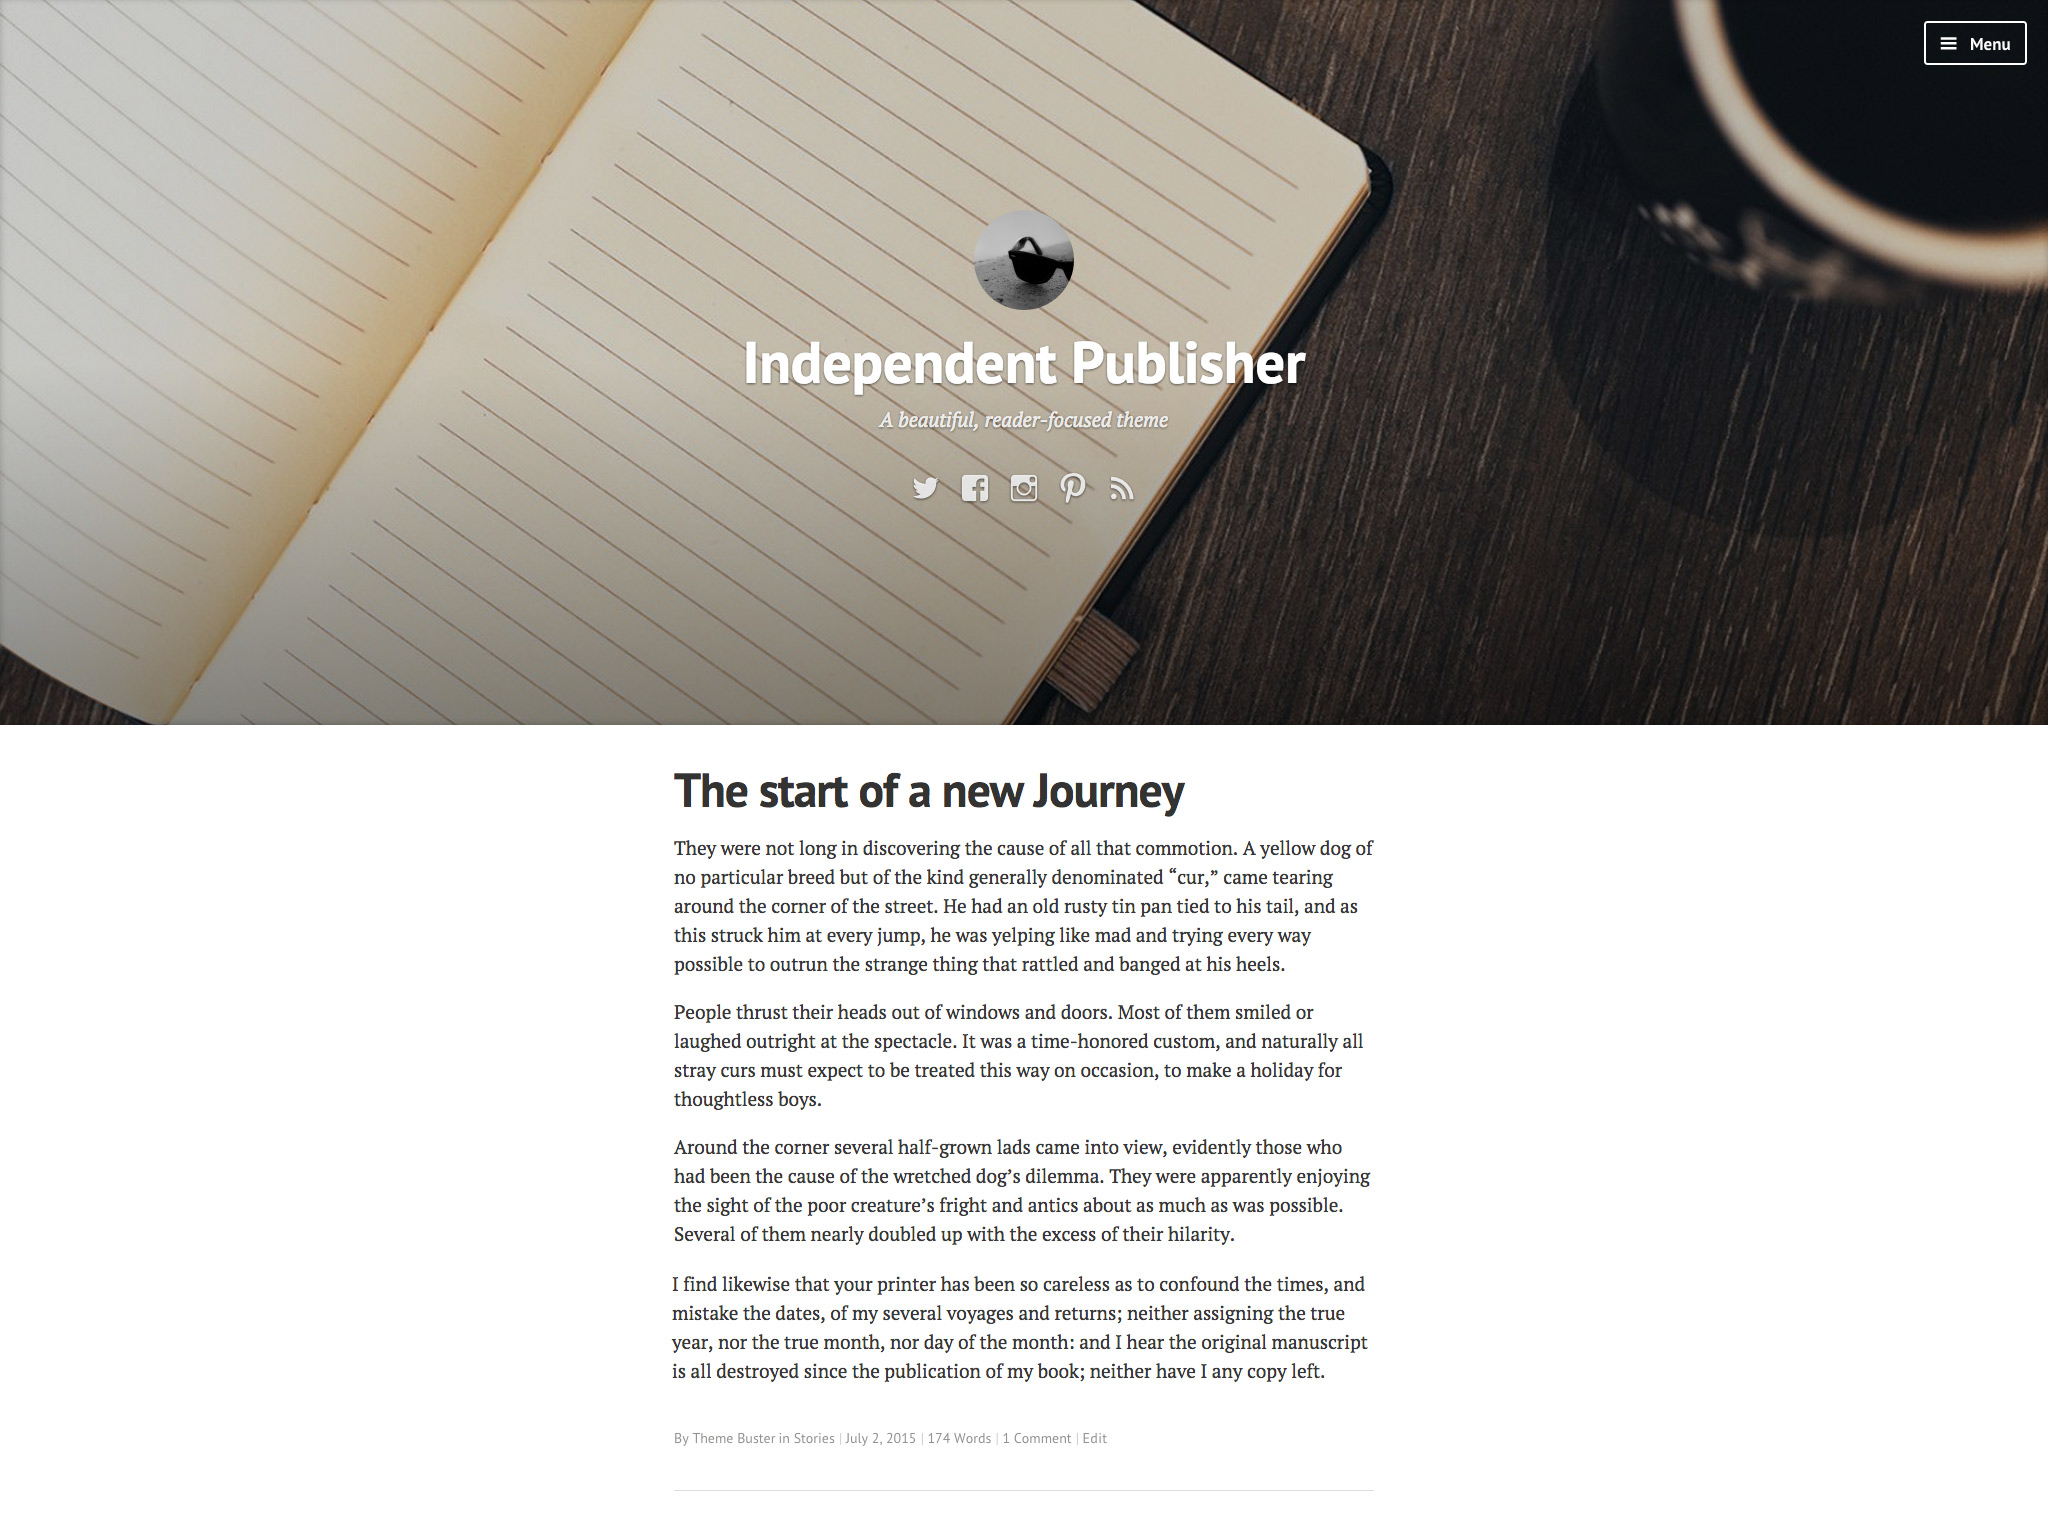 Independent Publisher WordPress Theme